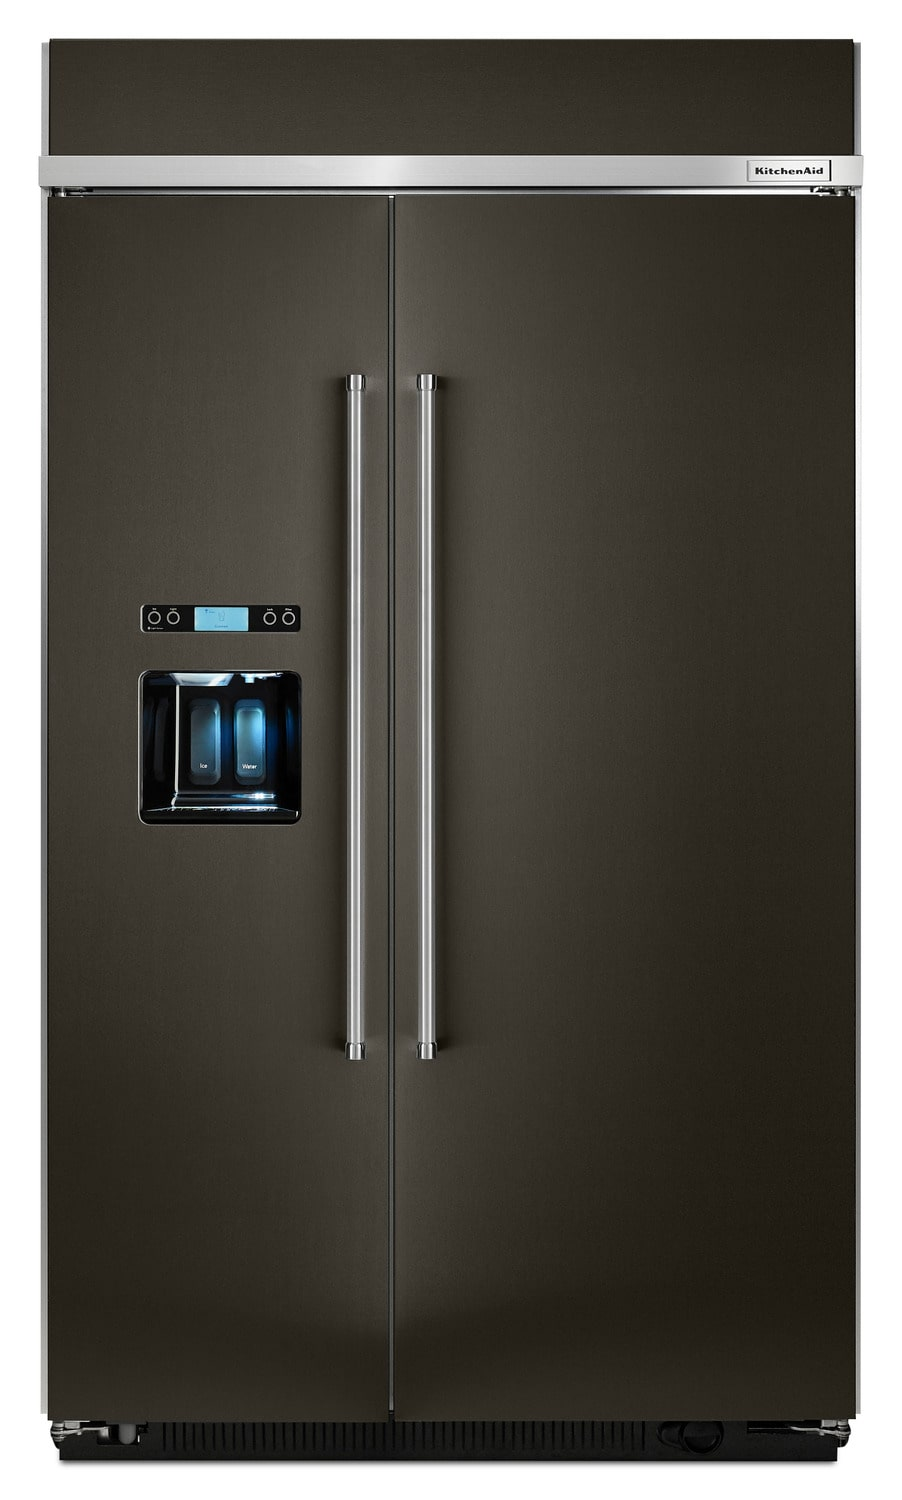 KitchenAid 29.5 Cu. Ft. Built-In Side-by-Side Refrigerator – KBSD608EBS